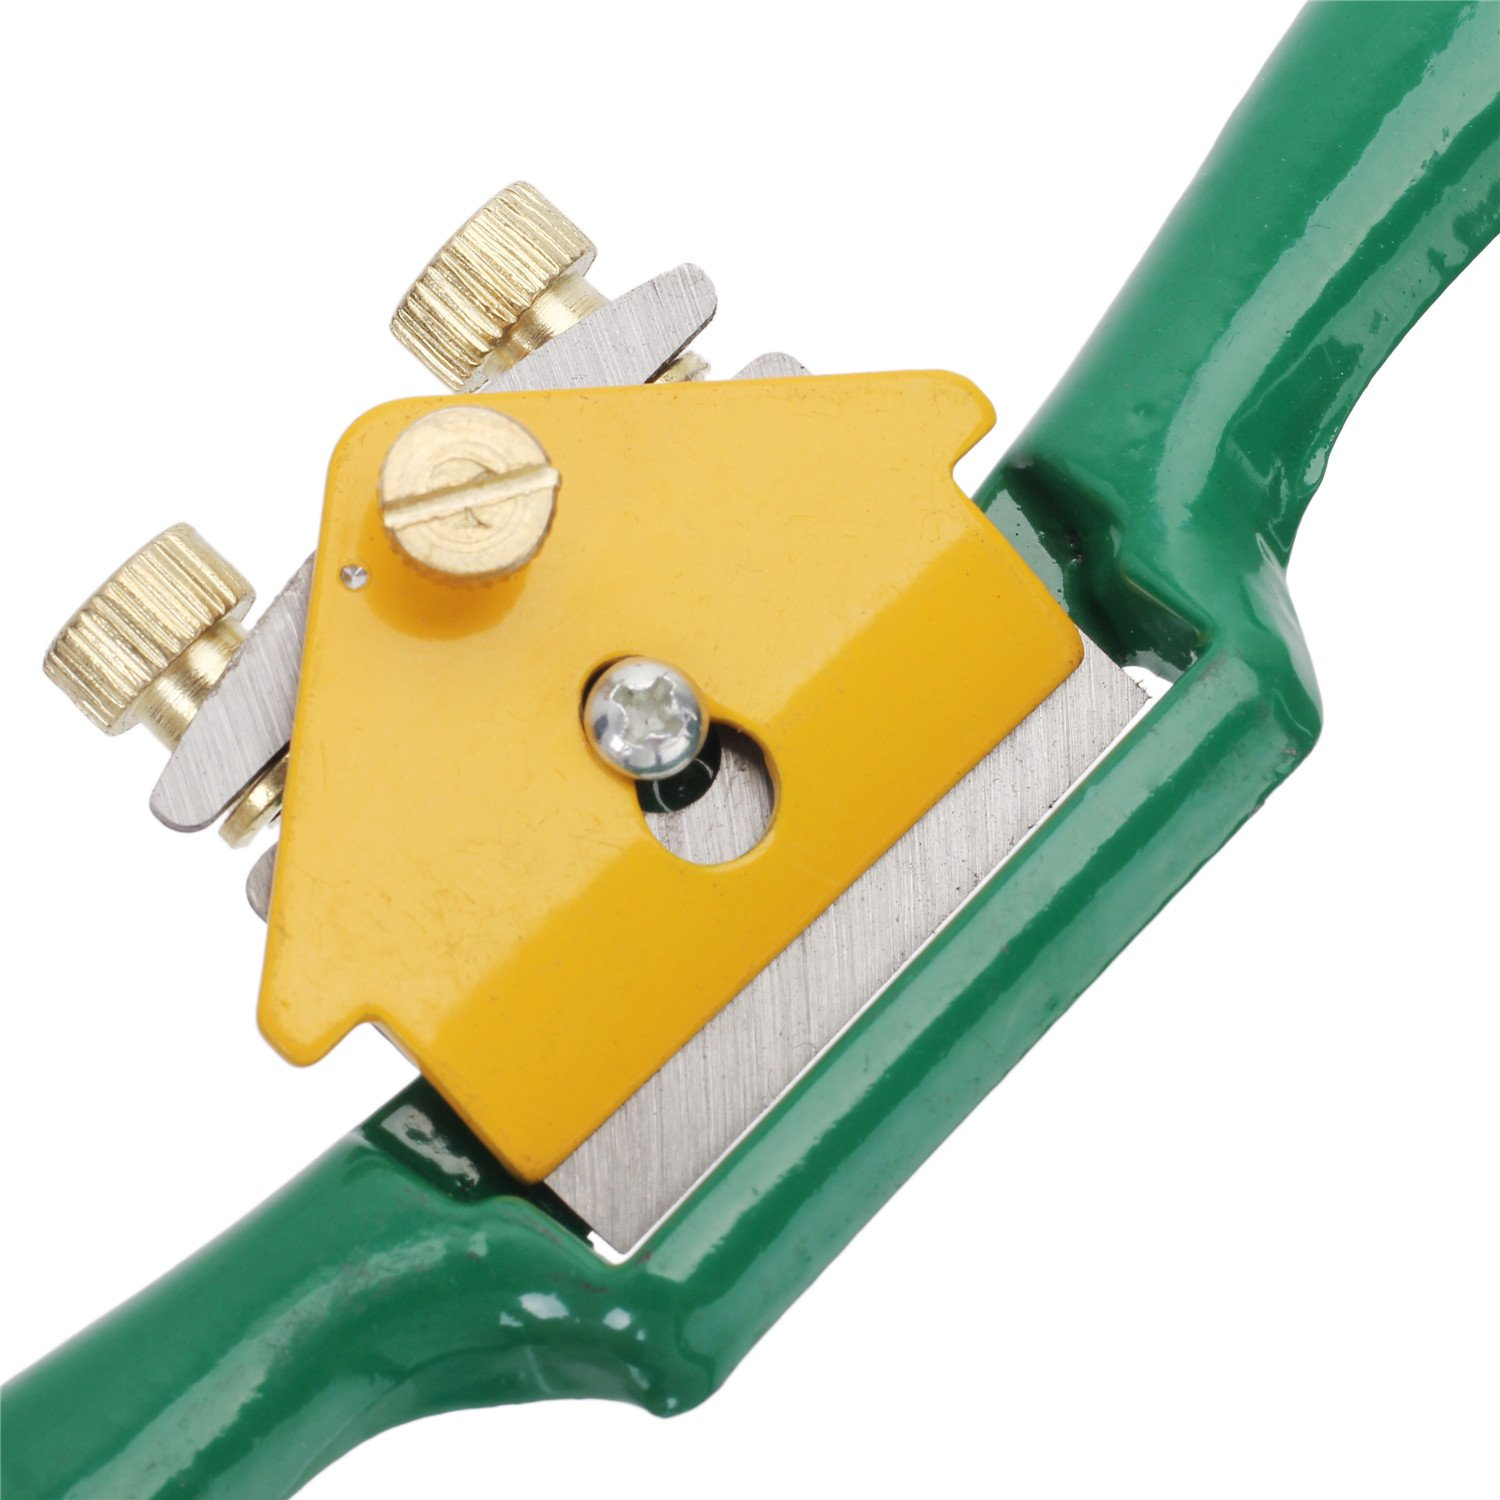 Refaxi 210mm Spoke Shave Manual Plane Planer Woodworking Blade Hand Tools Green by ReFaXi (Image #5)